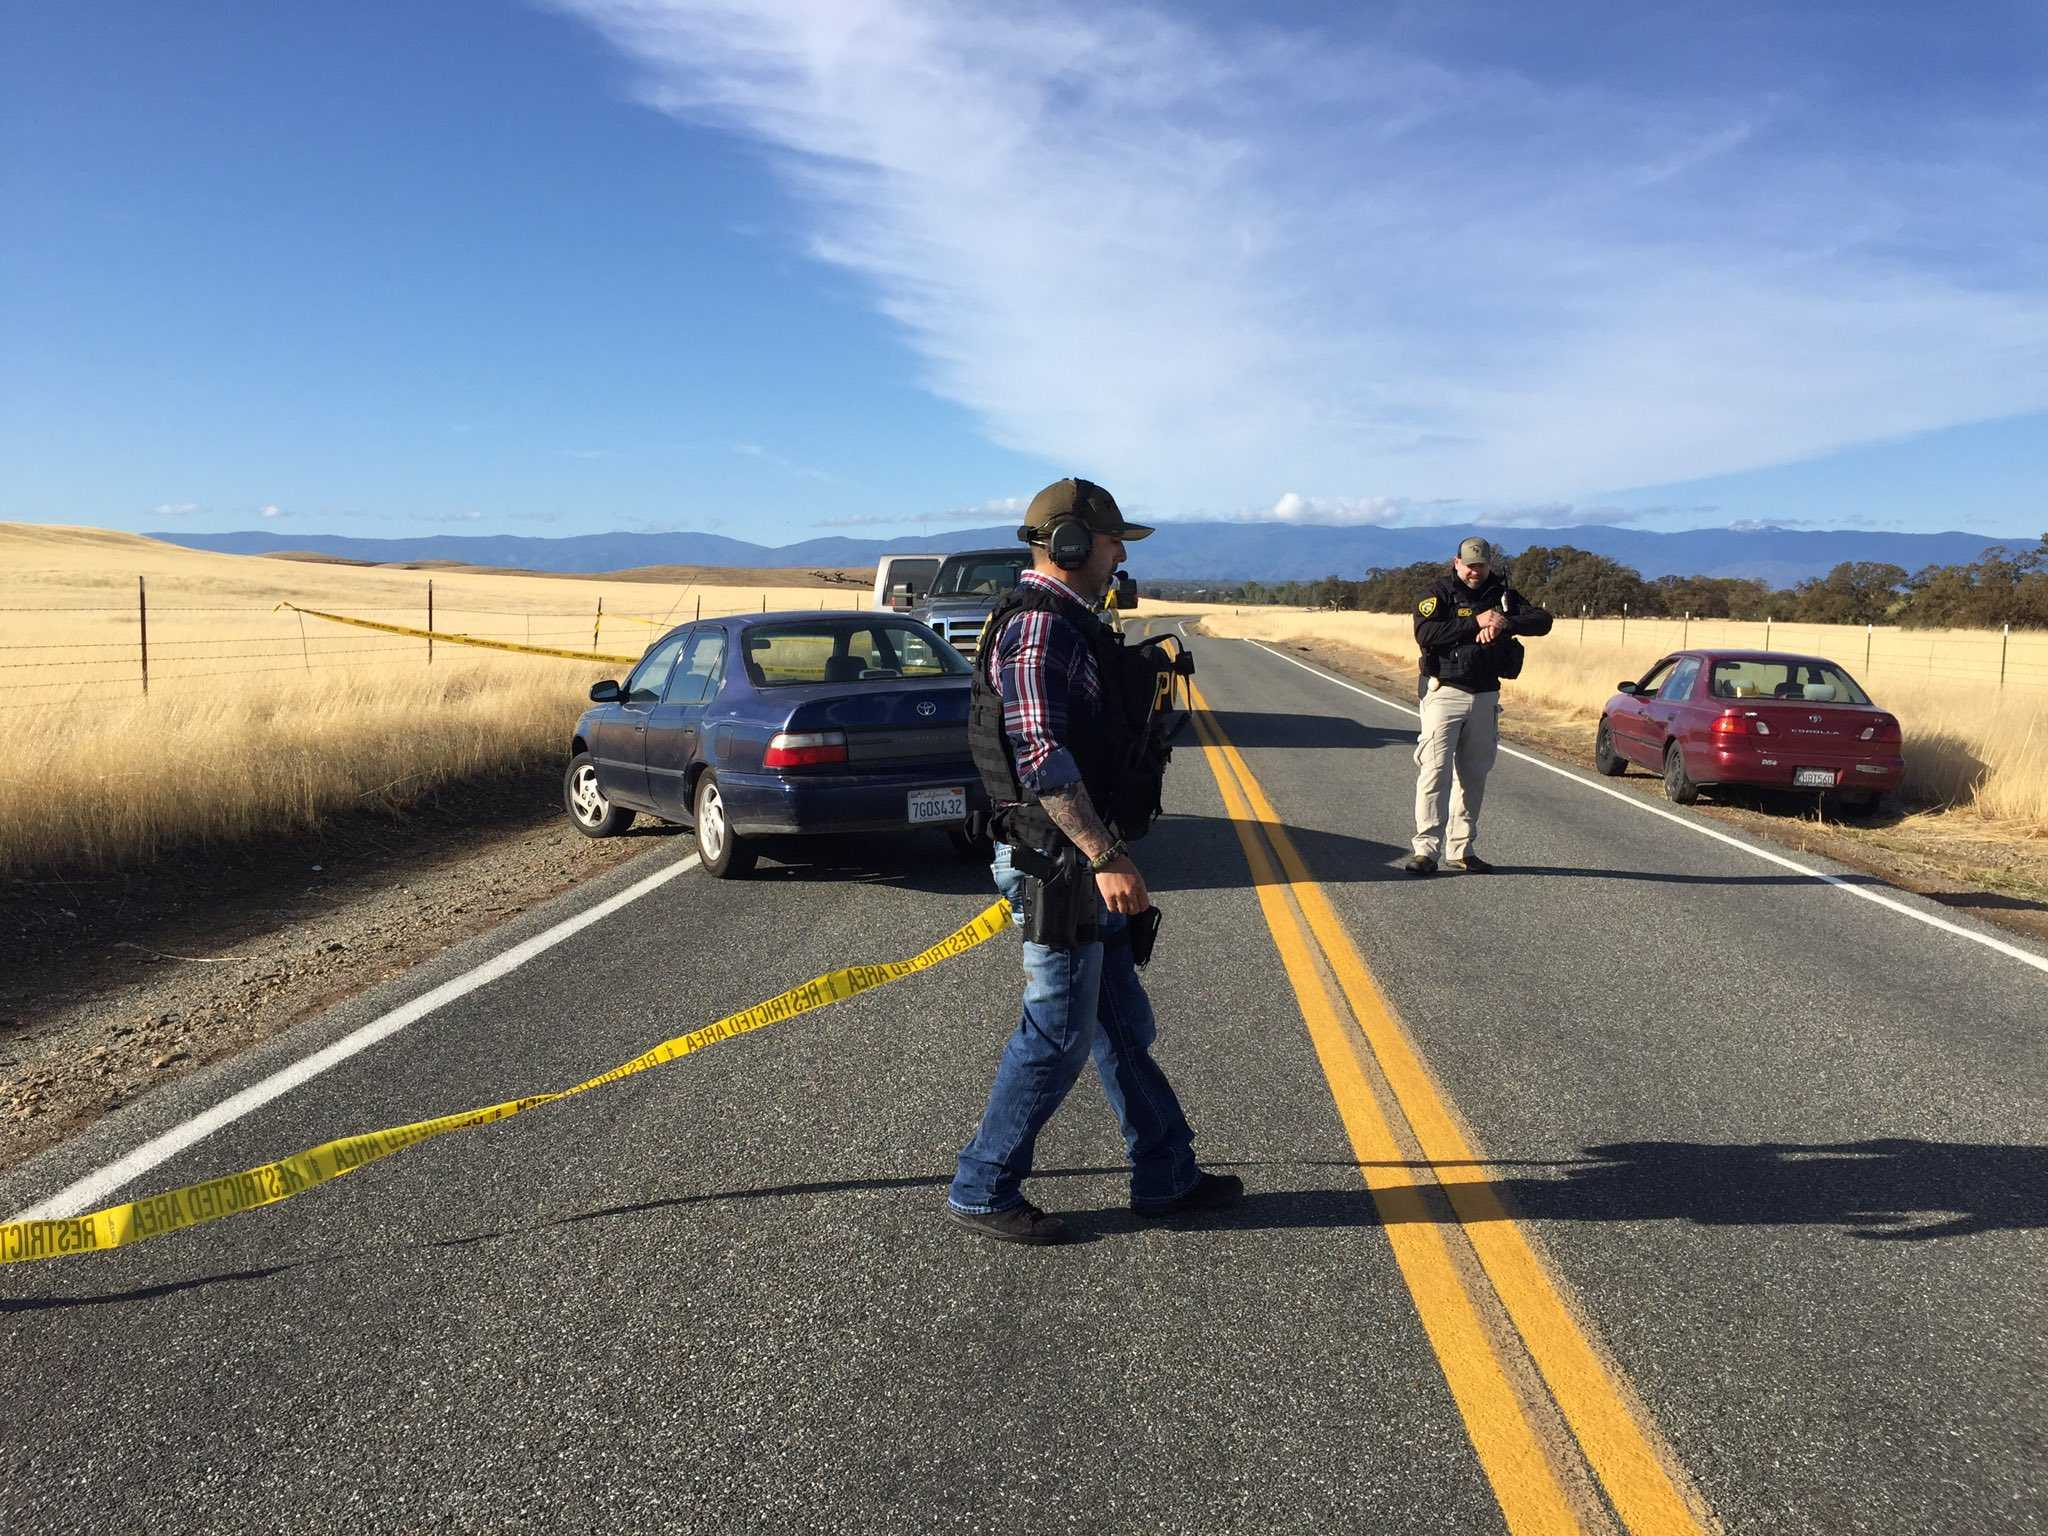 Five Dead After Elementary School Shooting in Northern California